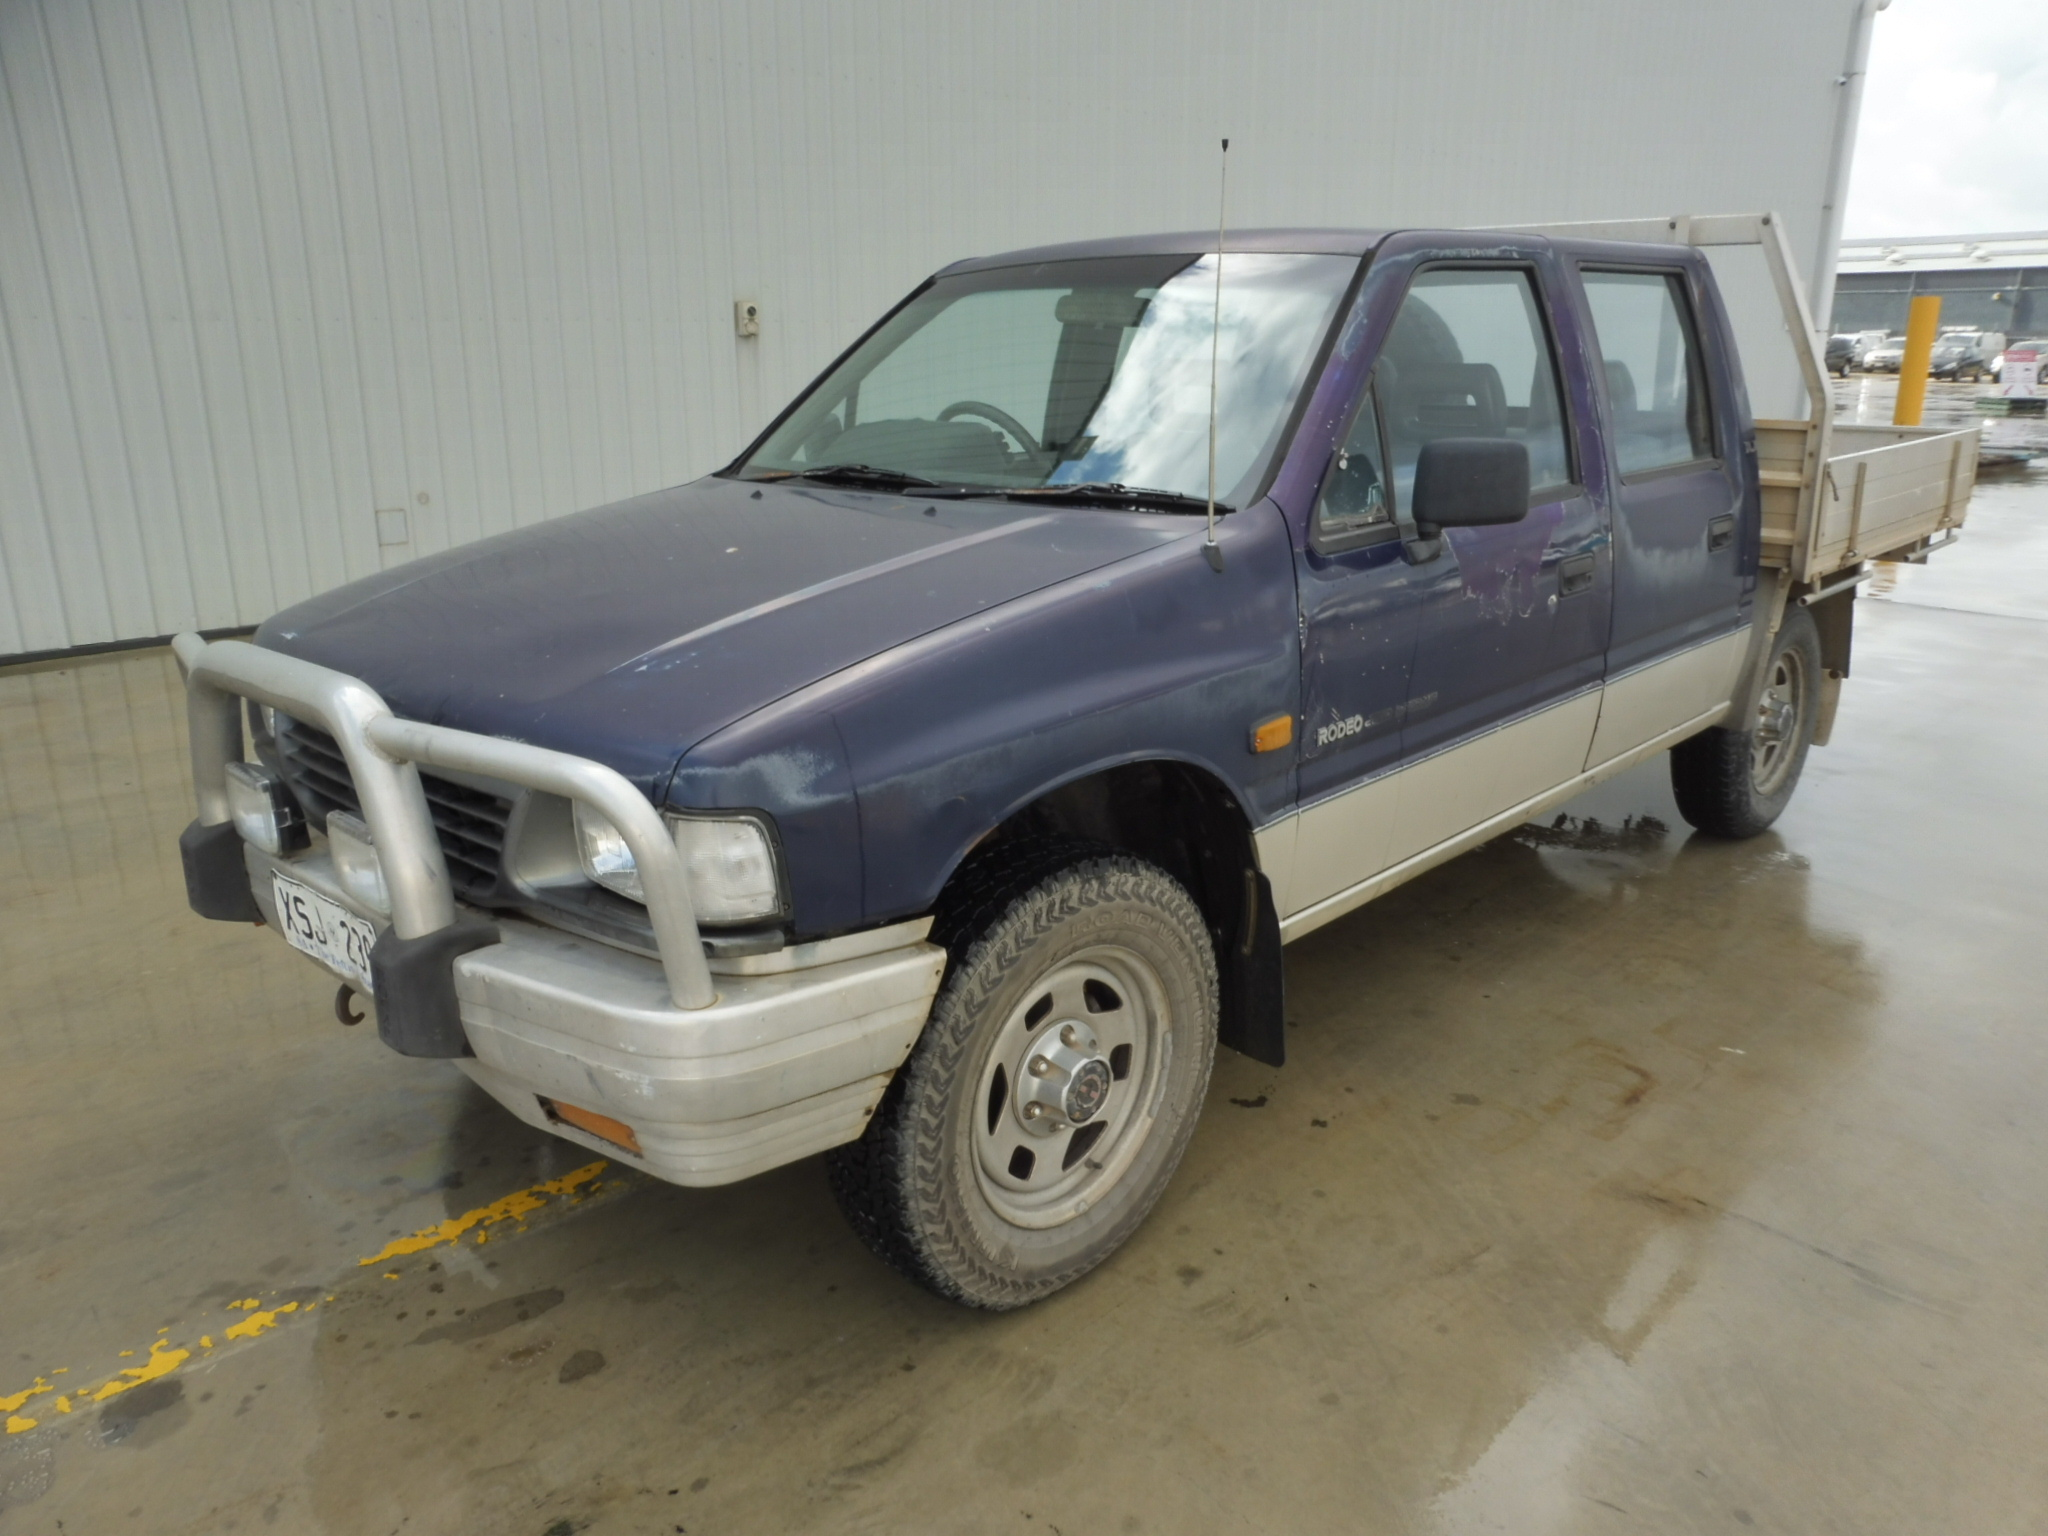 1994 Holden Rodeo DELUXE TF Manual Dual Cab Auction (0001-8009901) |  GraysOnline Australia